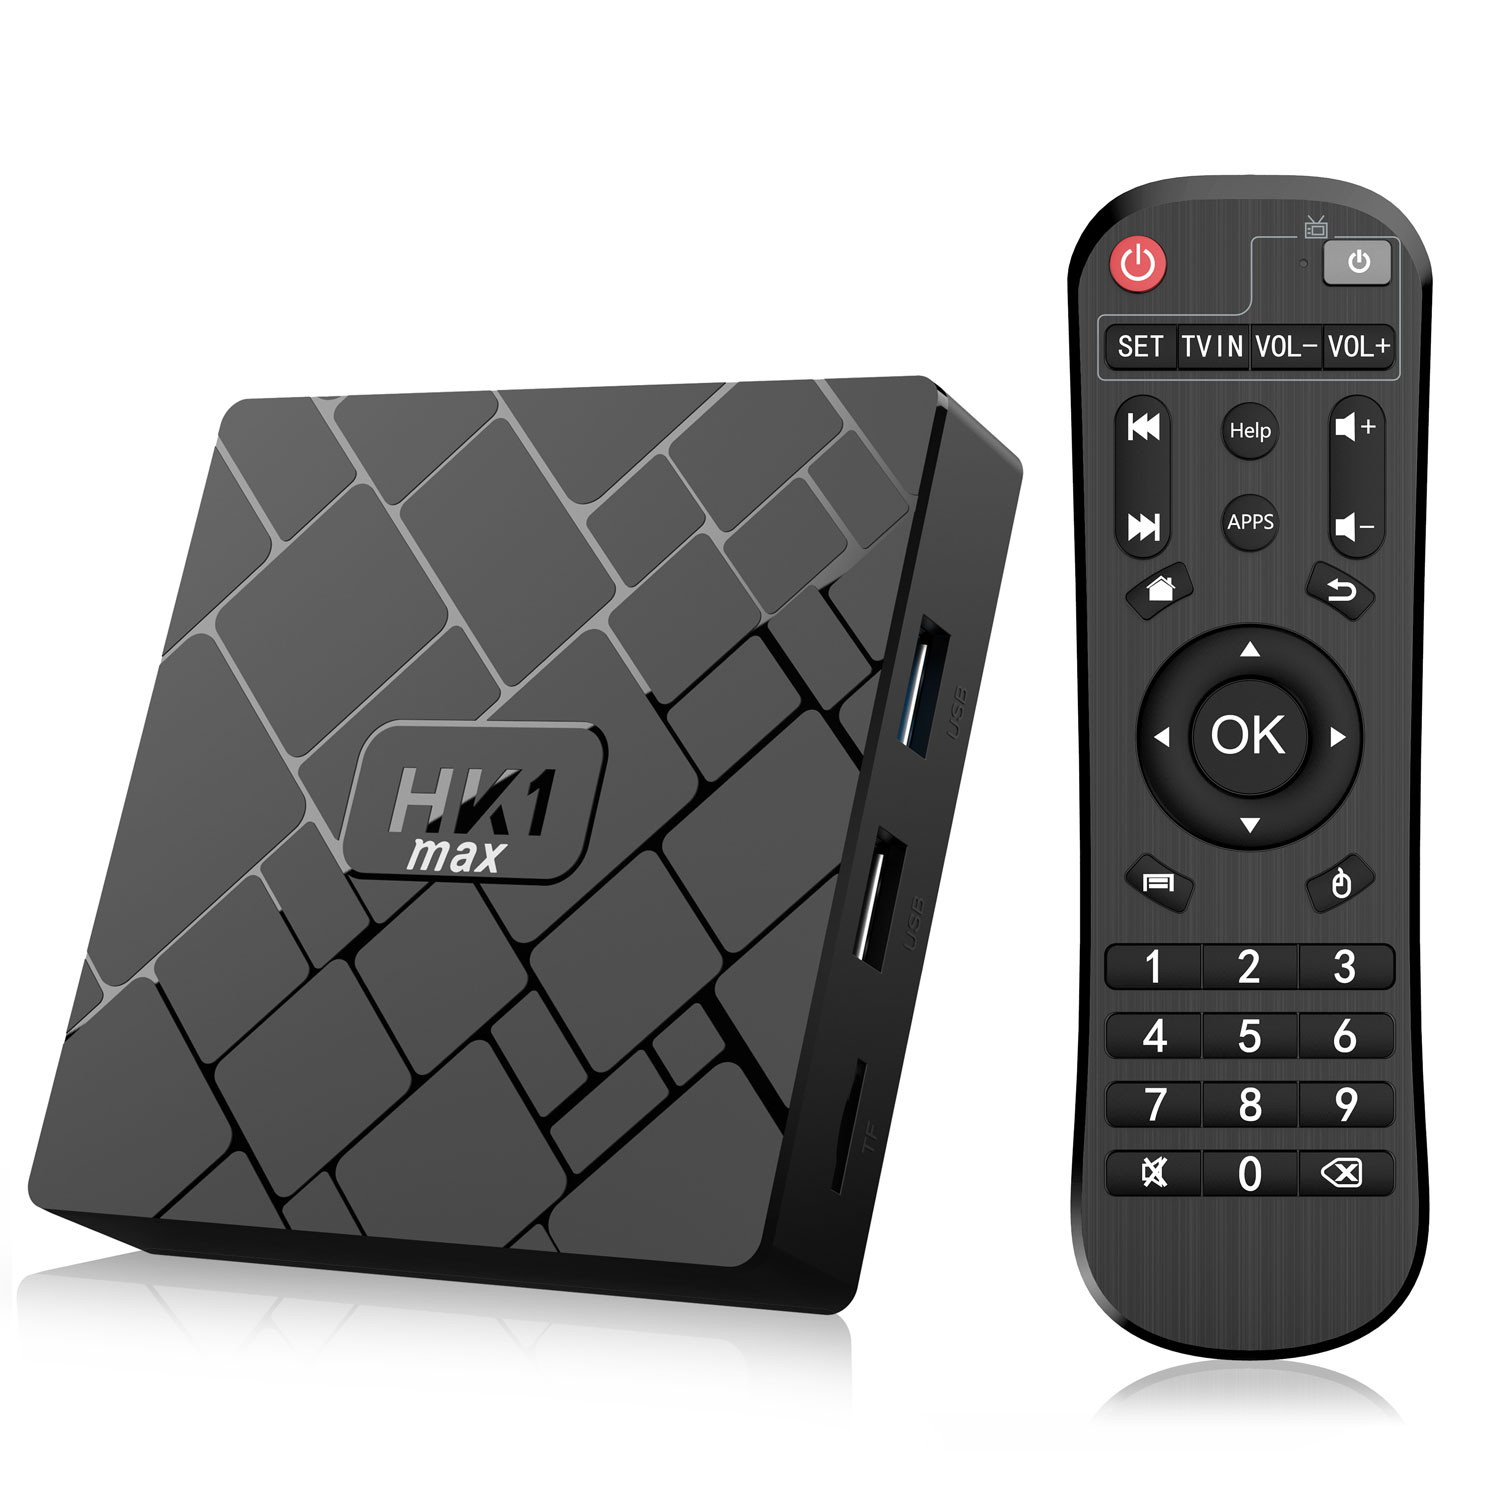 BQEEL HK1 MAX ANDROID 9.0 TV BOX 4GB RAM & 64GB ROM, DOUBLE WIFI 2.4/5G, BLUETOOTH 4.0